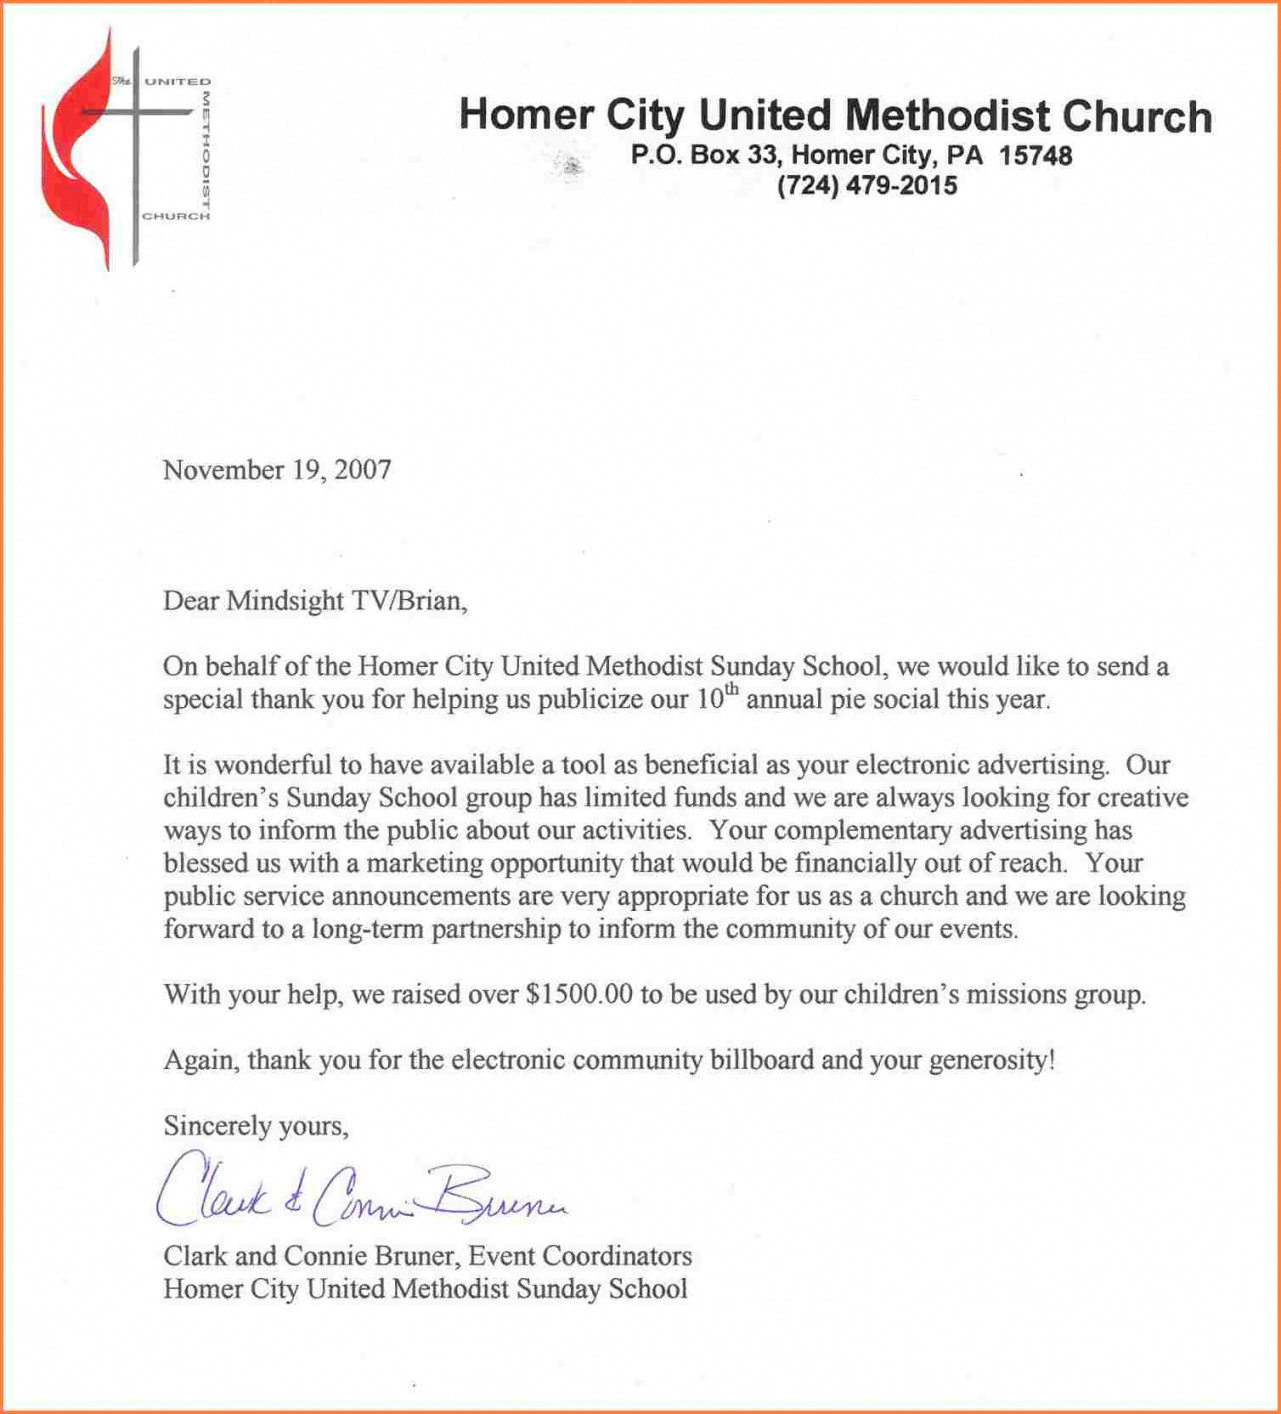 Donation Letter Template for Church - Church Donation Letter Samples Beautiful Thank You Letter for